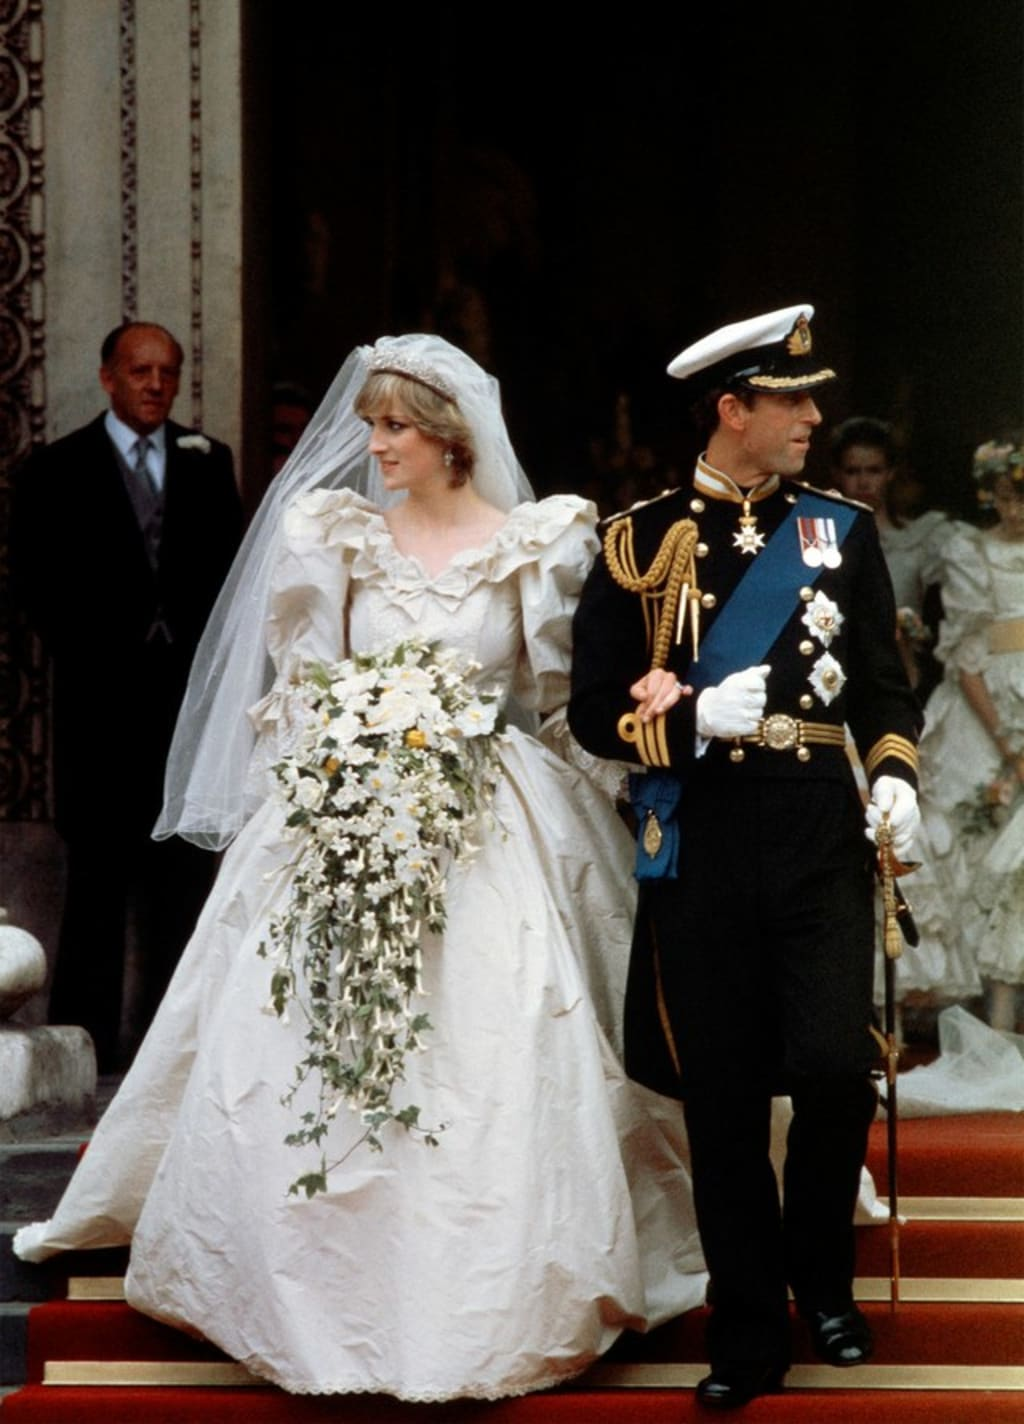 Where Were You The Day Princess Diana Died